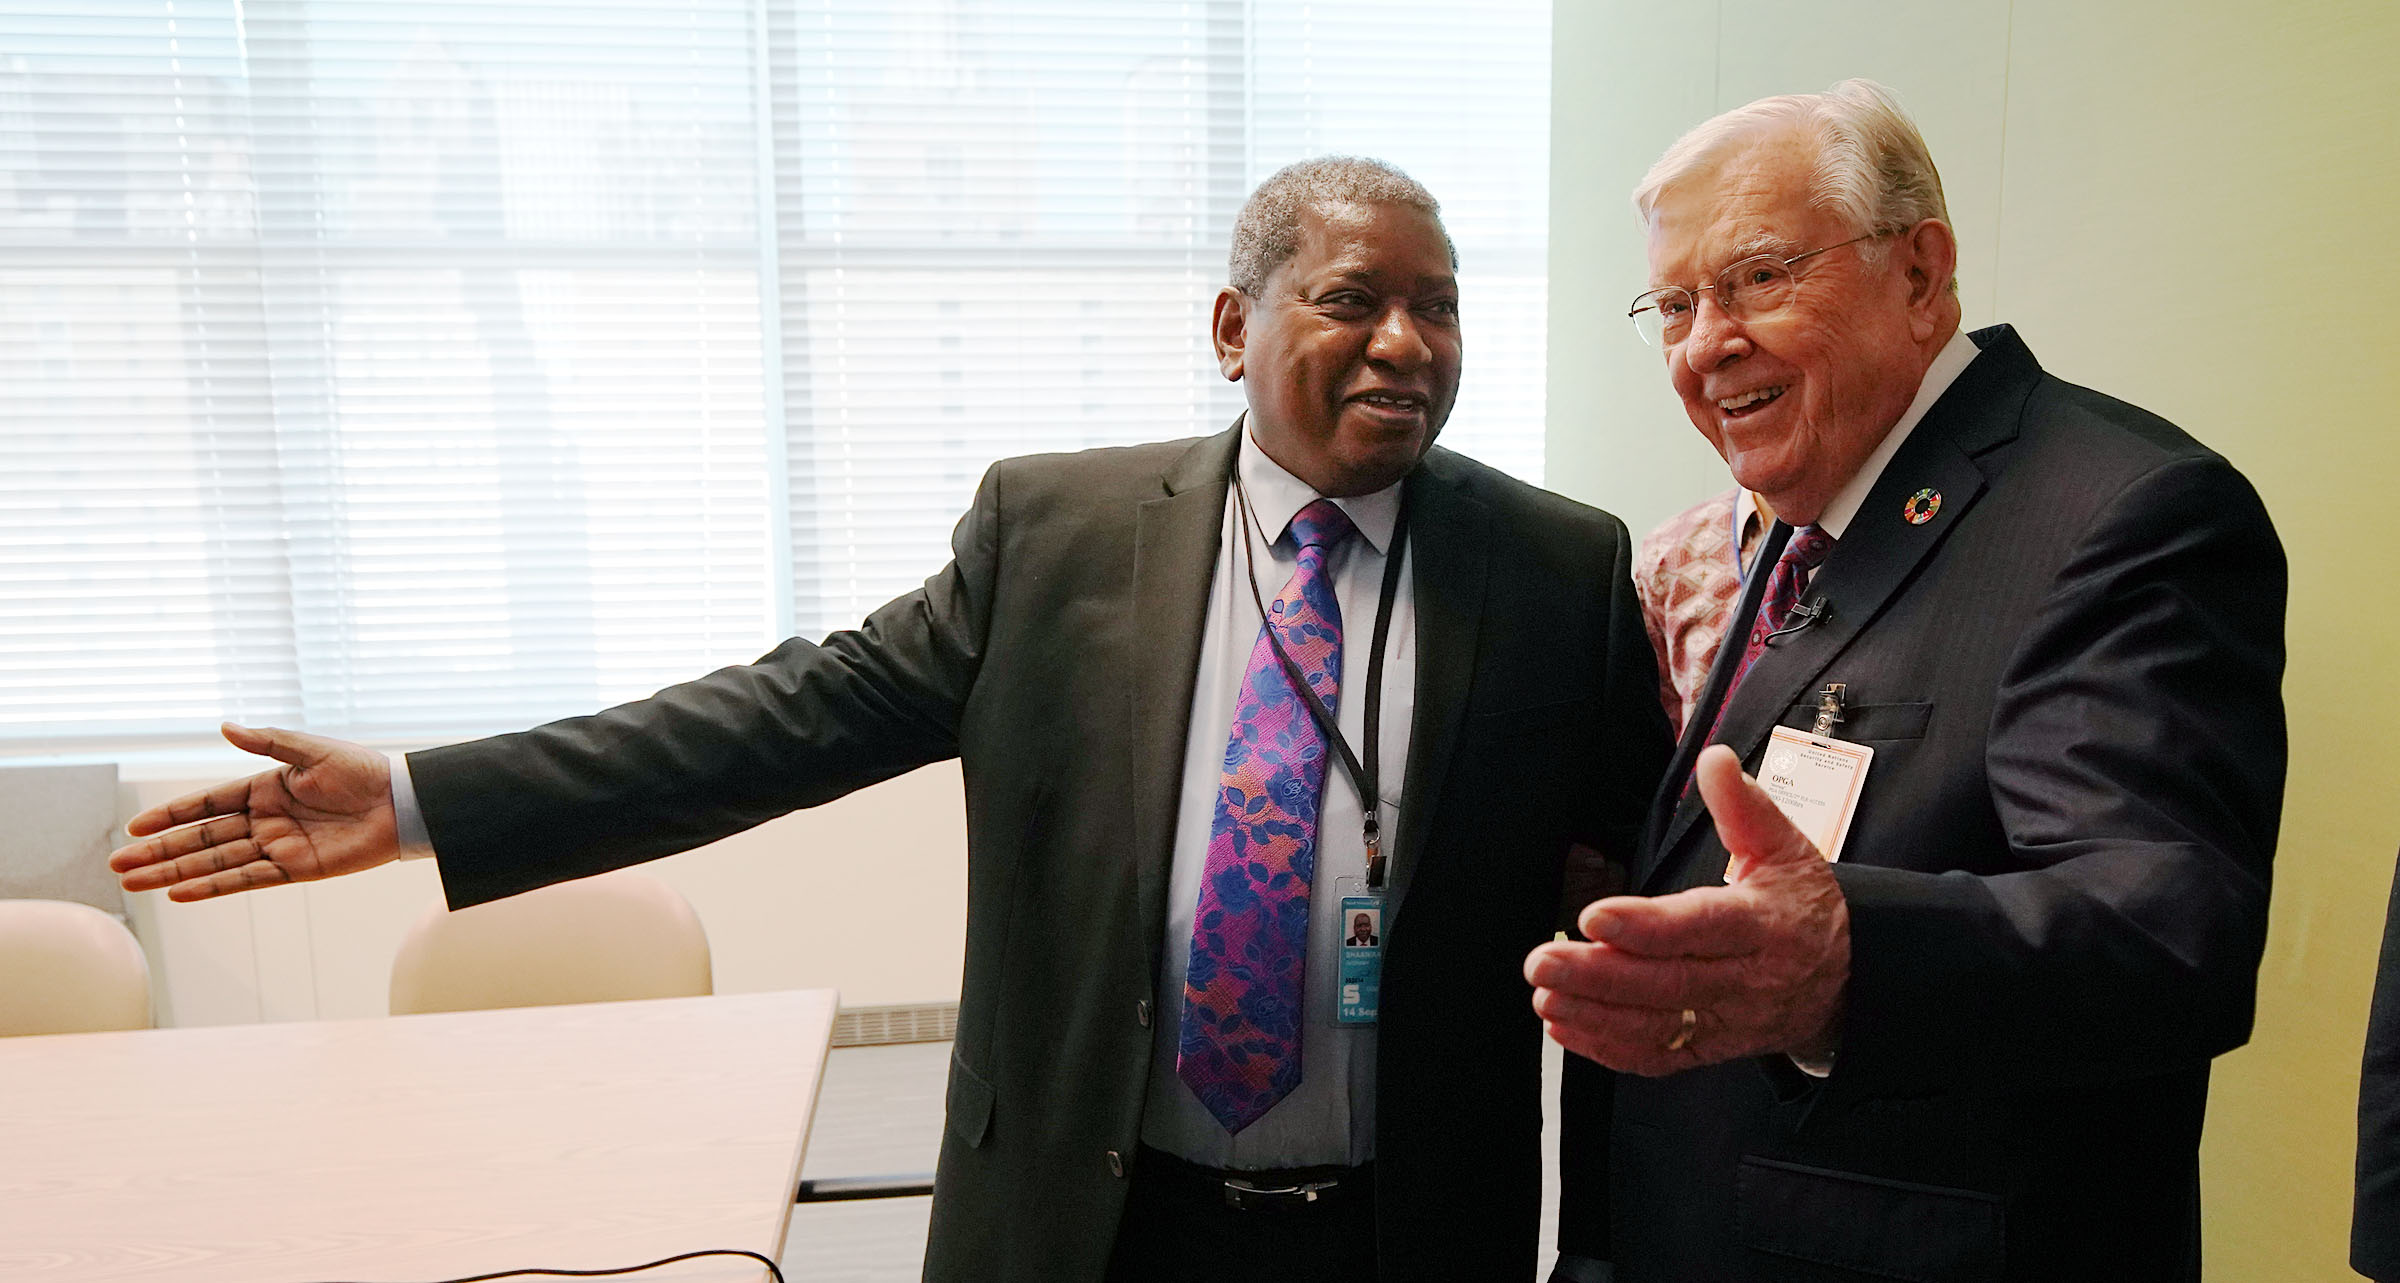 President M. Russell Ballard, right, acting president of the Quorum of the Twelve Apostles of The Church of Jesus Christ of Latter-day Saints, greets Dr. Jerobeam Shaanika, deputy chef de cabinet, office of the President of the General Assembly of the United Nations 74th Session in New York City on Friday, Nov. 15, 2019.